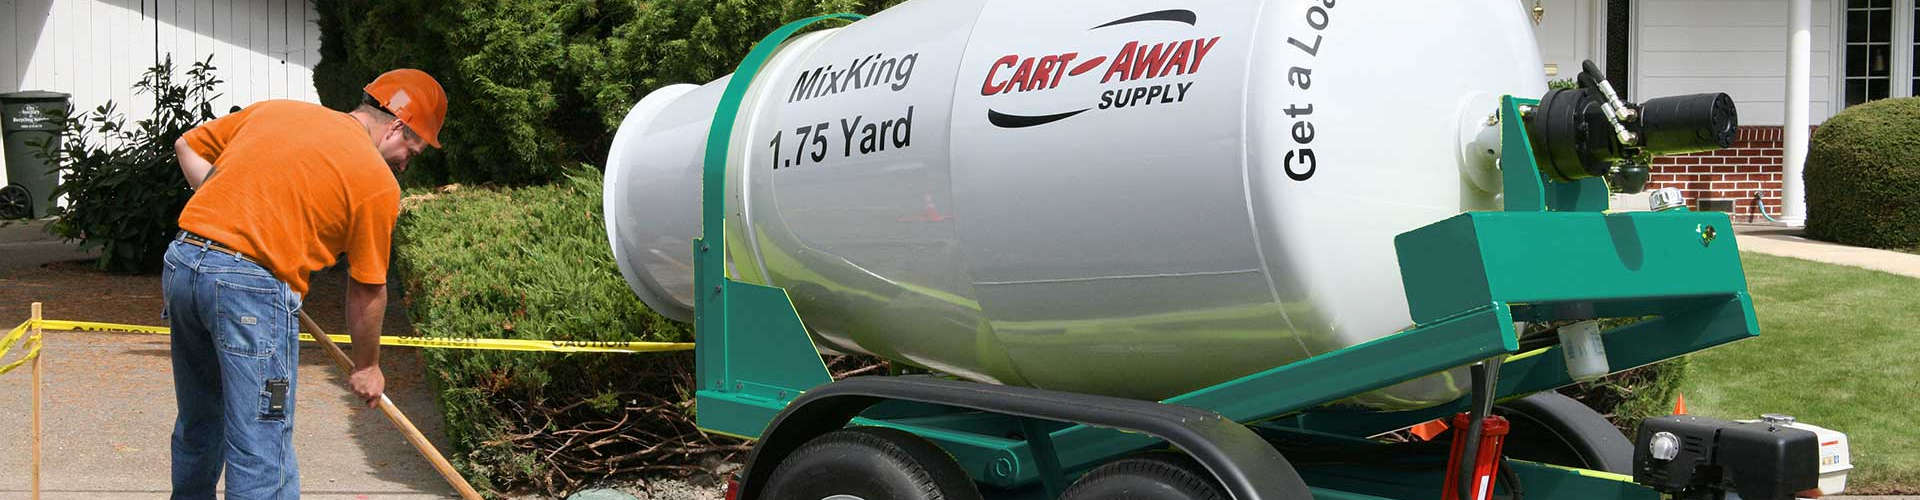 Cart-Away Concrete in Bellingham, Skagit County, Mt Vernon, Sedro Woolley, Burlington, Anacortes, San Juan Islands